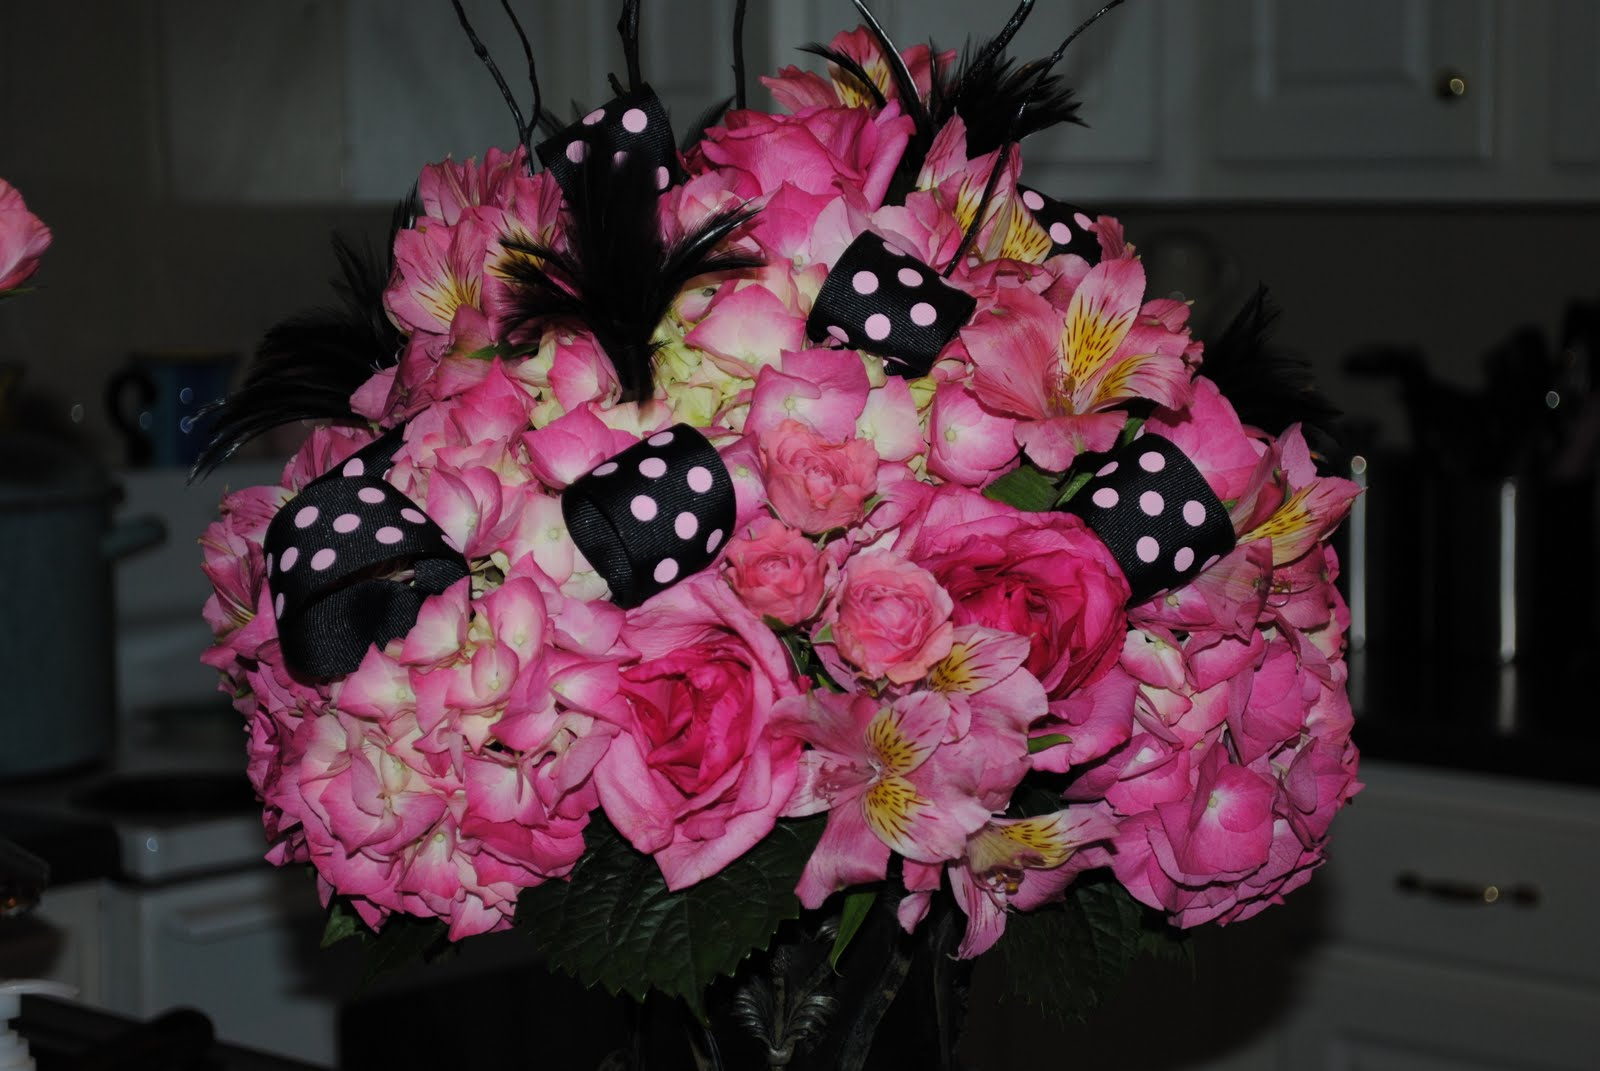 Two Shakes Of A Lambs Tail Chads Pink And Black Flower Arrangement